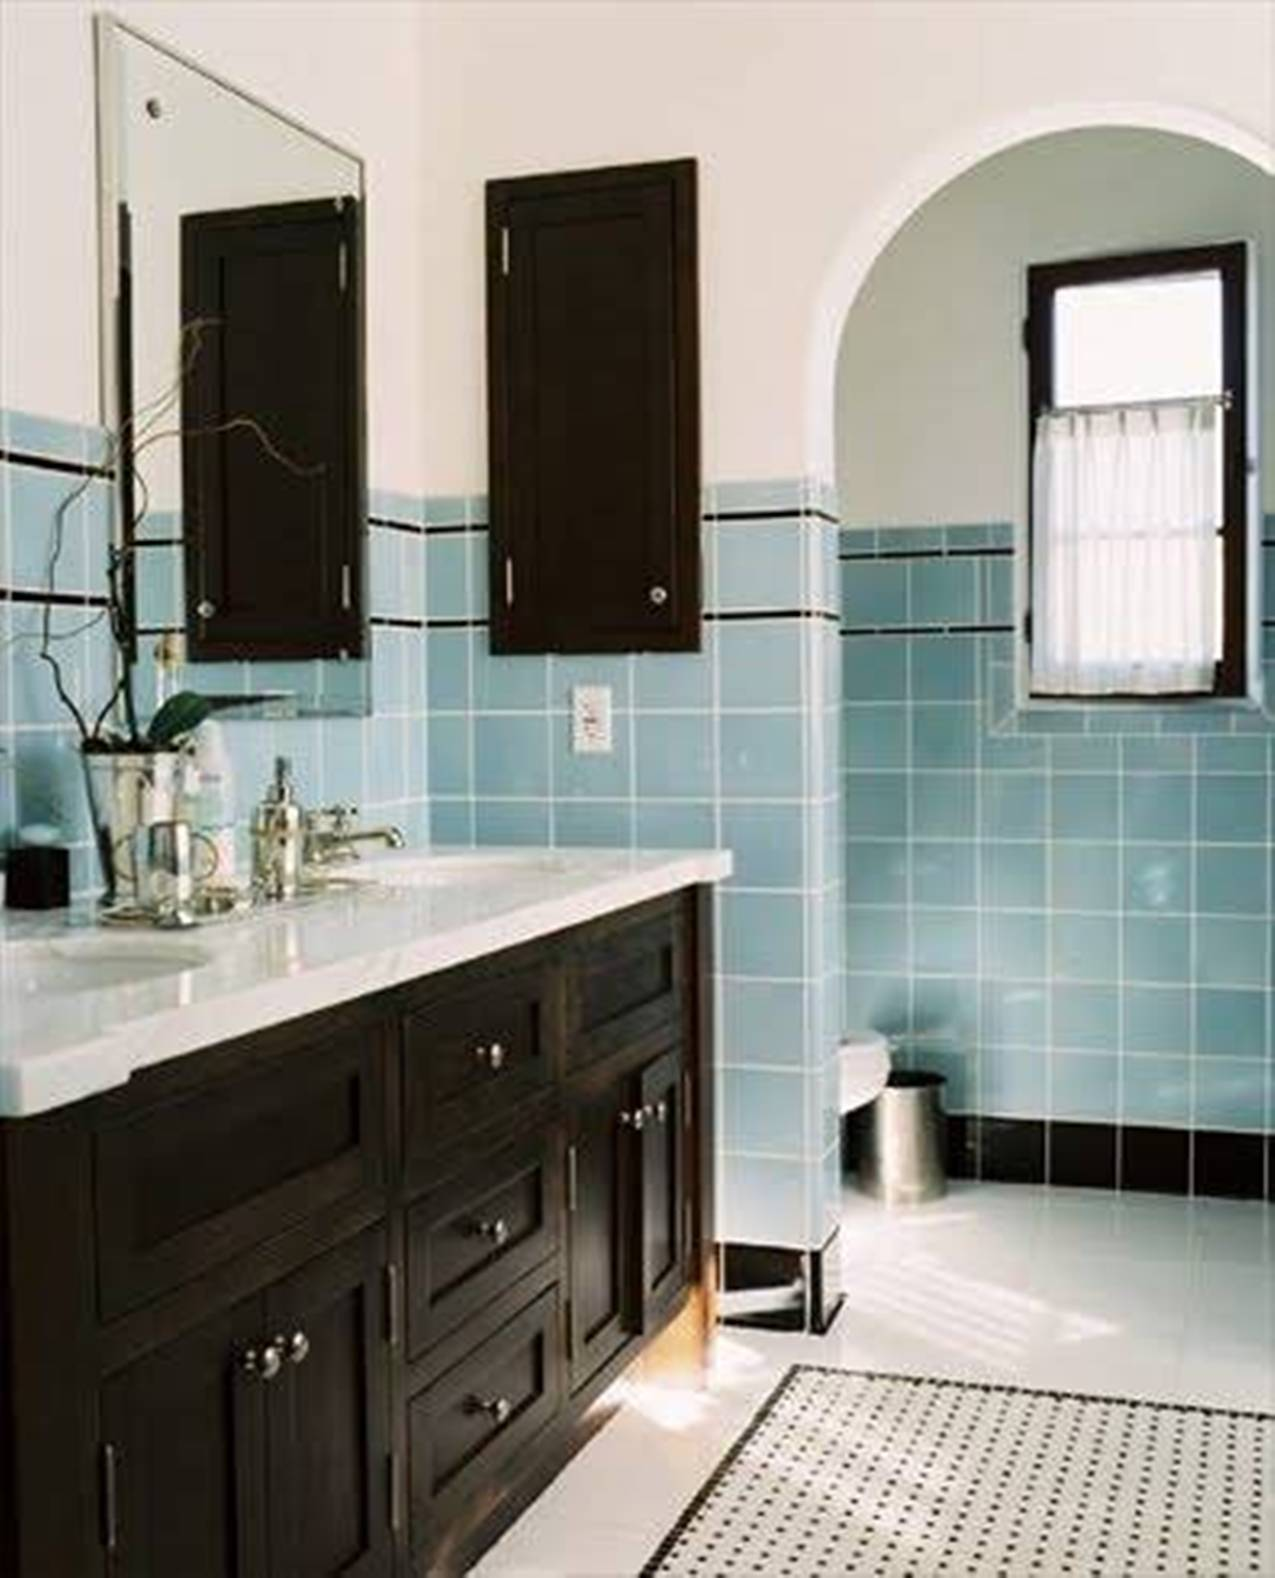 retro-bathroom-with-blue-and-black-tiles-and-wooden-vanity